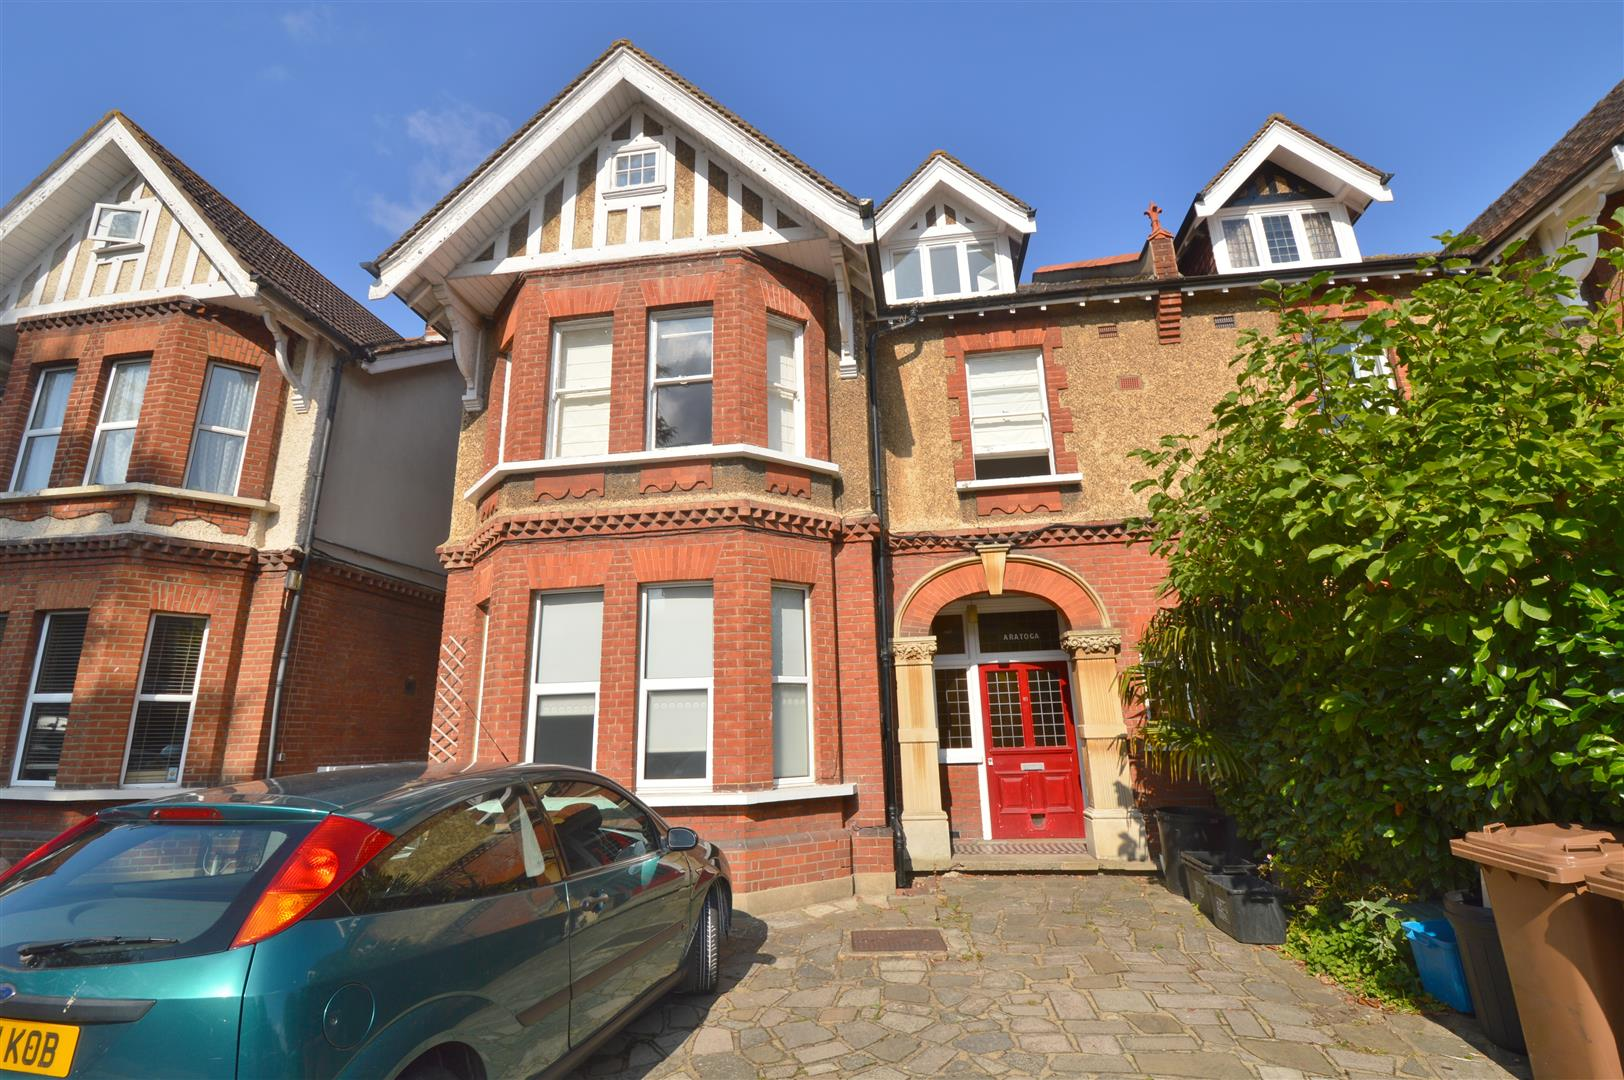 Vicarage Road, Hampton Wick KT1